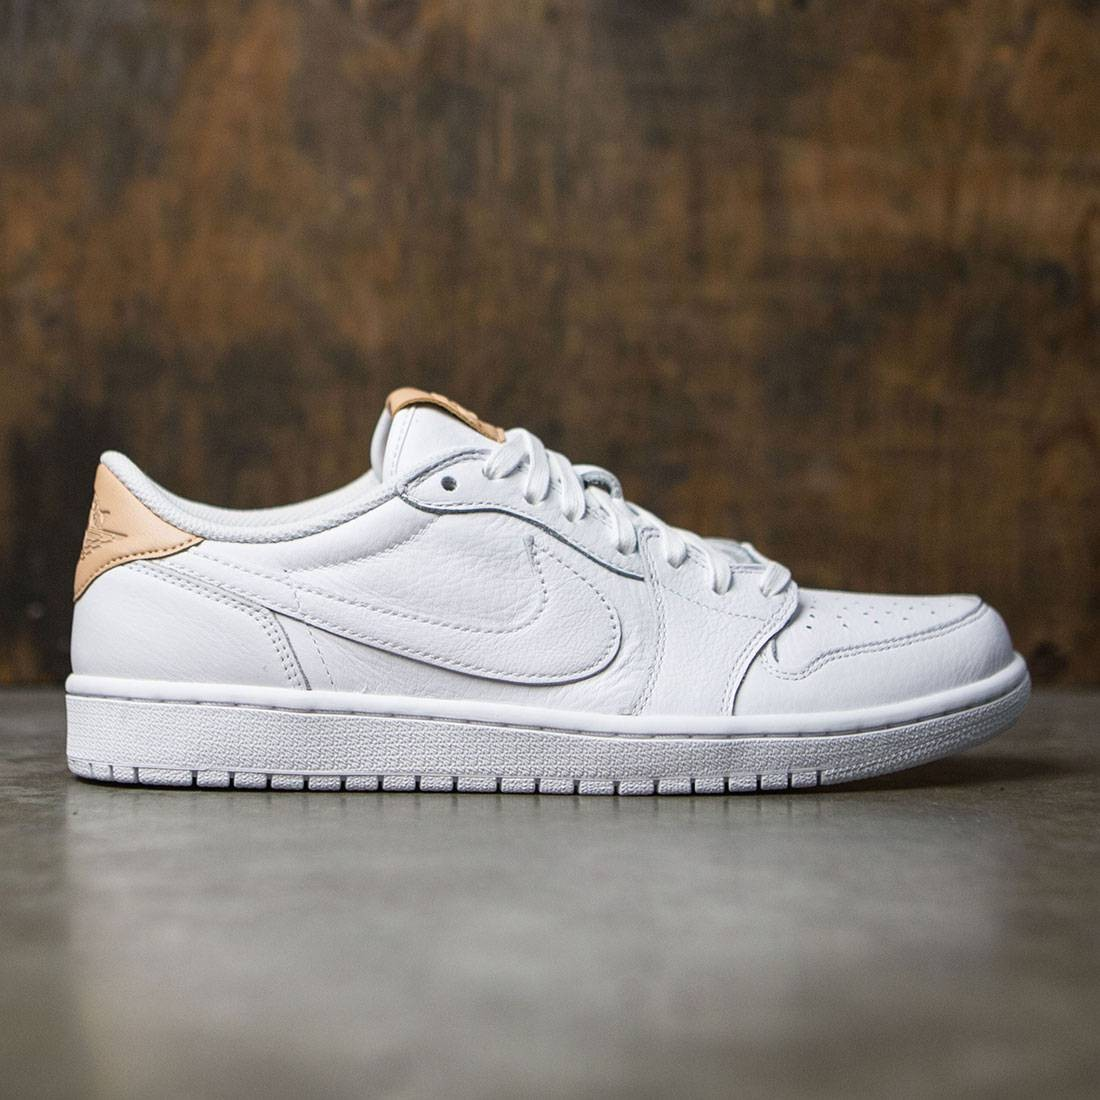 da887ecdbec jordan men air jordan 1 retro low og premium white vachetta tan white